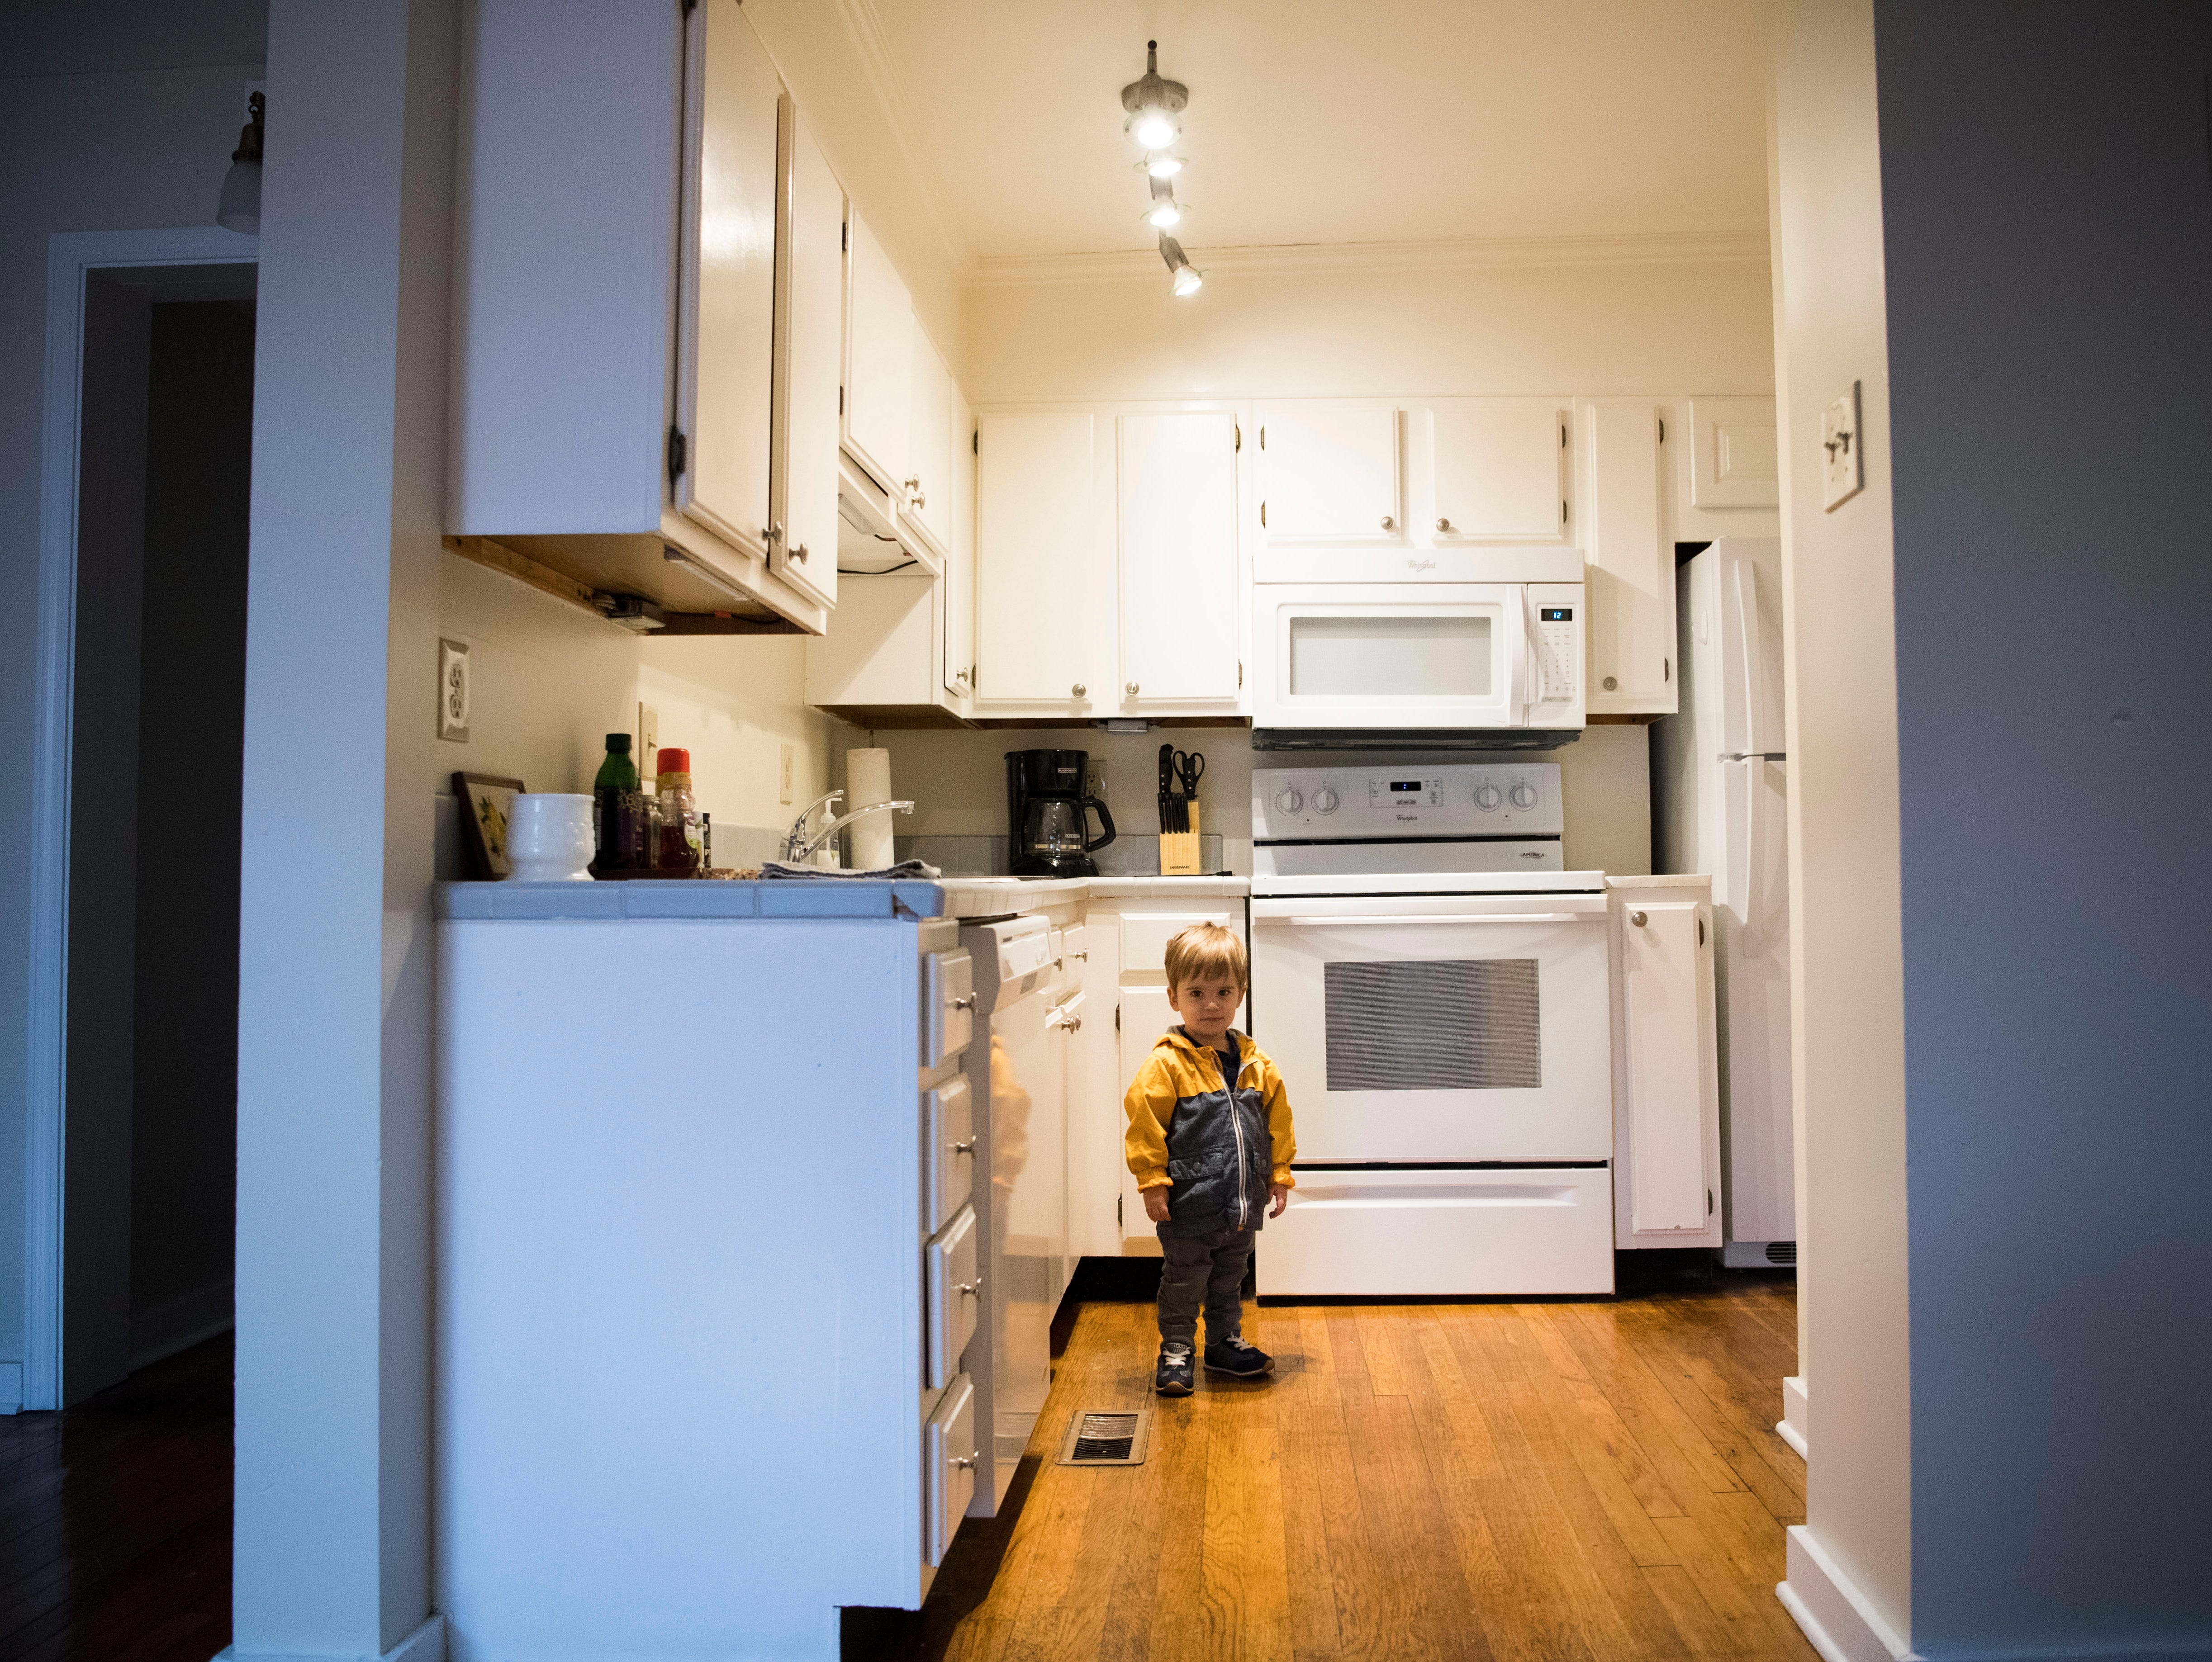 21-month-old Pete Robinson stands in the kitchen of one of 14 short-term rental properties his parents Dylan and Suzanne Robinson manage in their company Knox Staytion, in Old City Tuesday, Feb. 5, 2019.